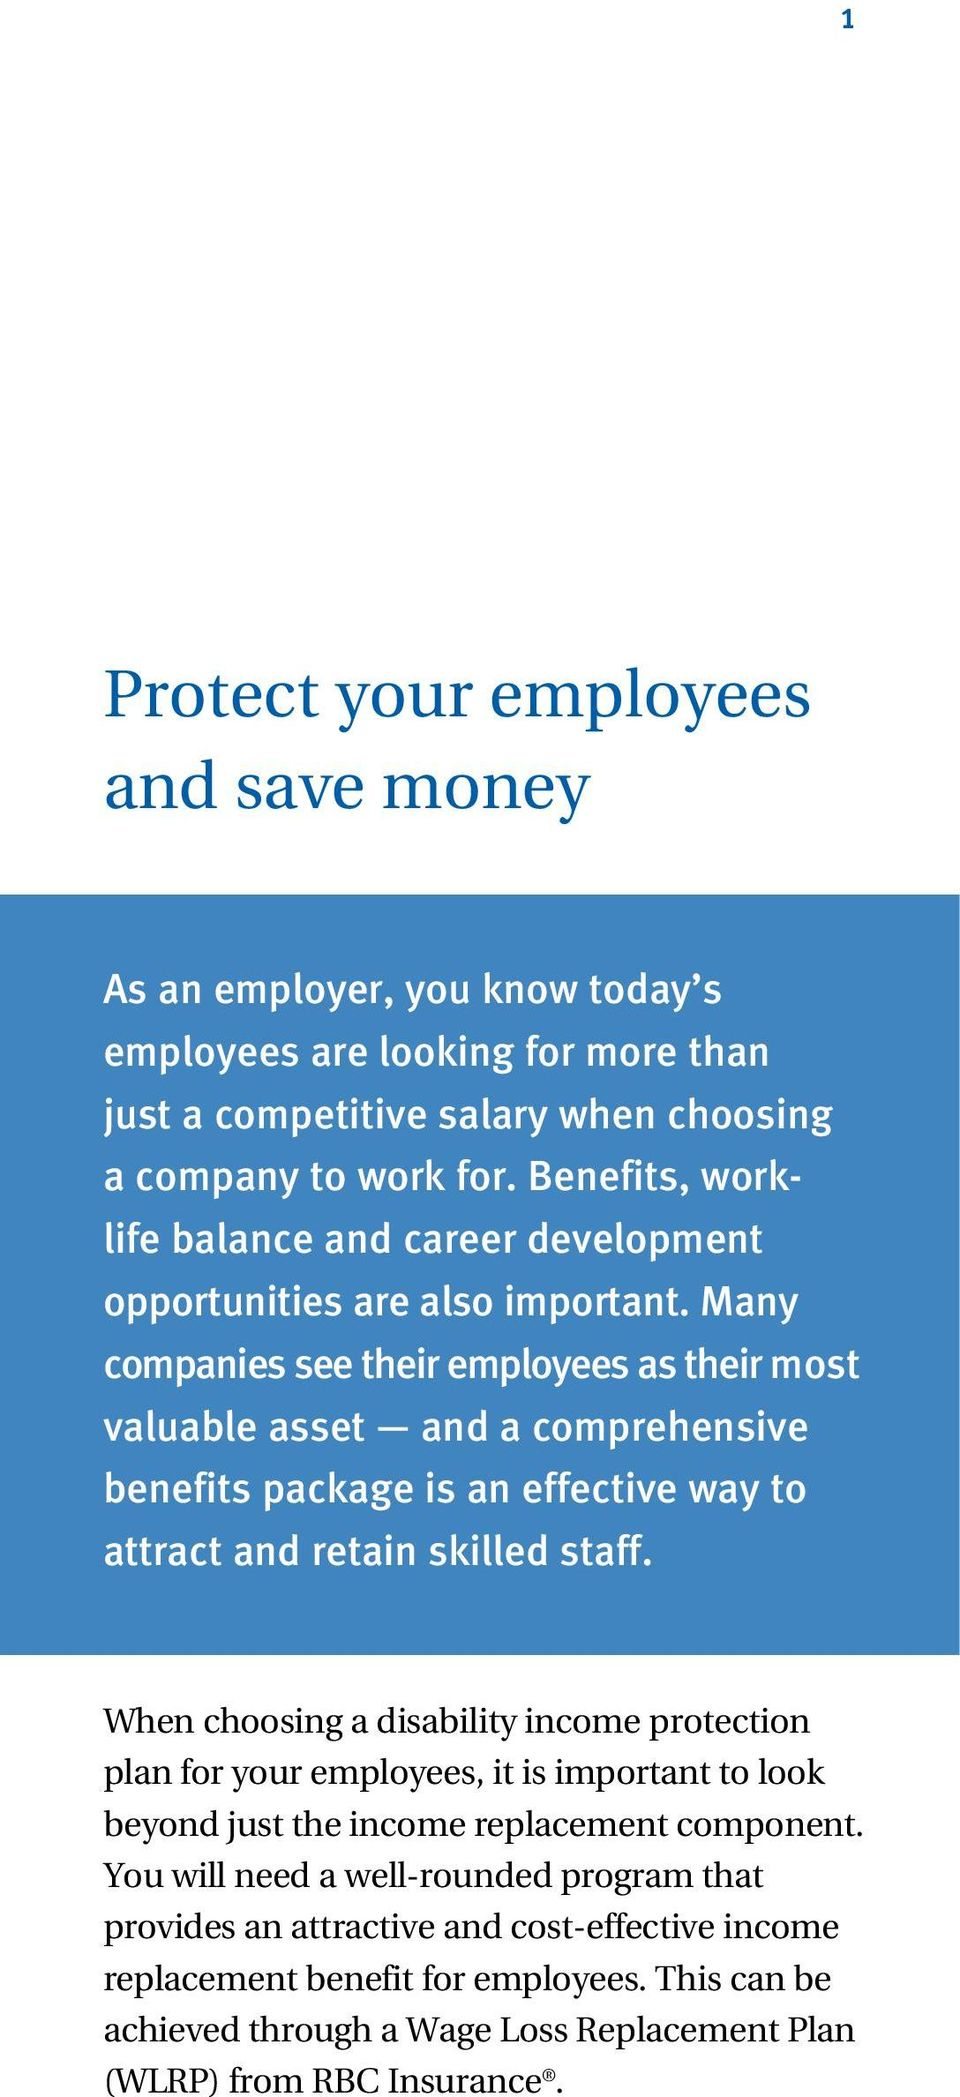 Many companies see their employees as their most valuable asset and a comprehensive benefits package is an effective way to attract and retain skilled staff.